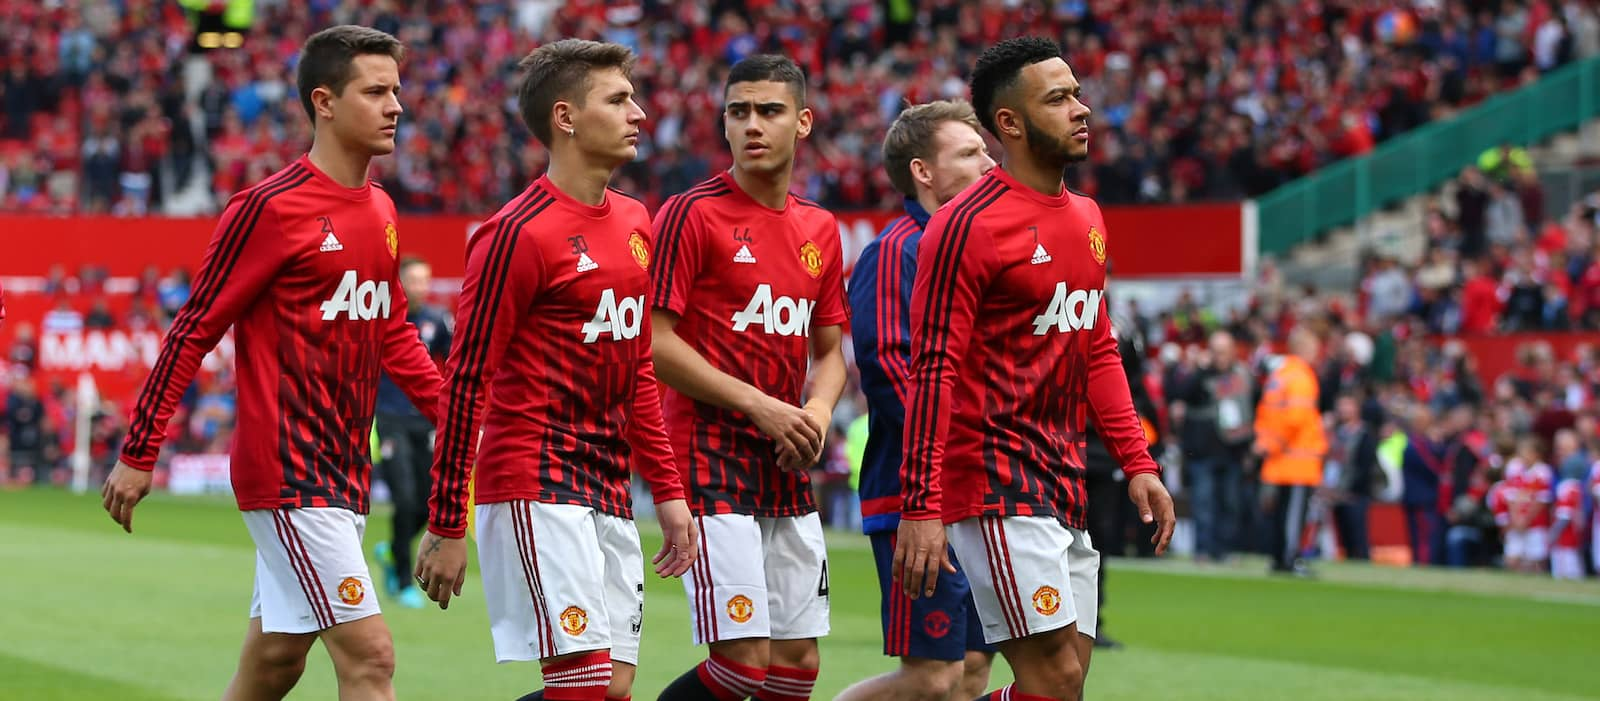 Ronald de Boer explains why Memphis Depay failed at Manchester United